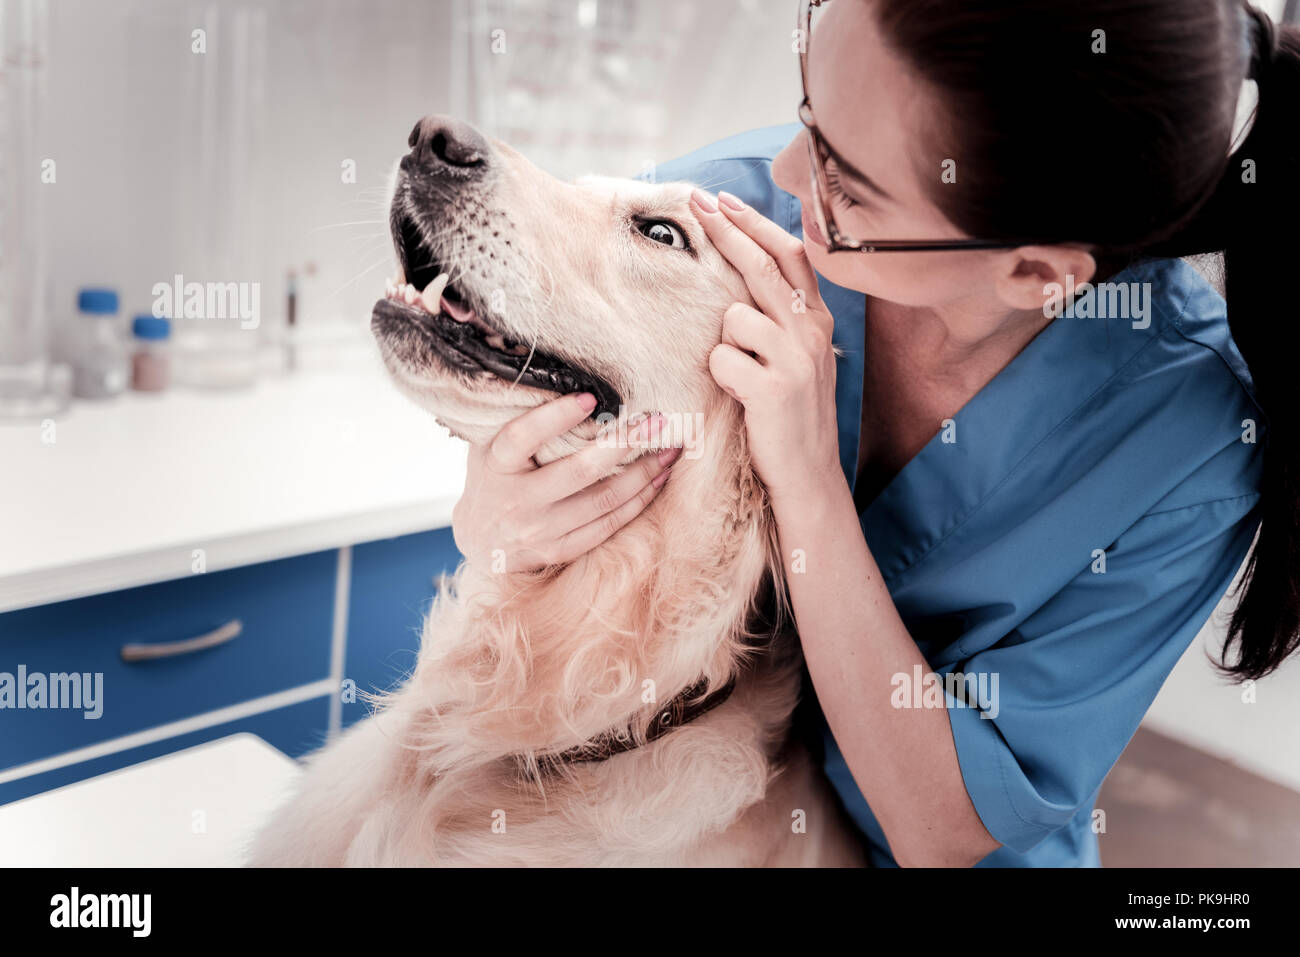 Sick dog keeping mouth and eyes wide opened - Stock Image